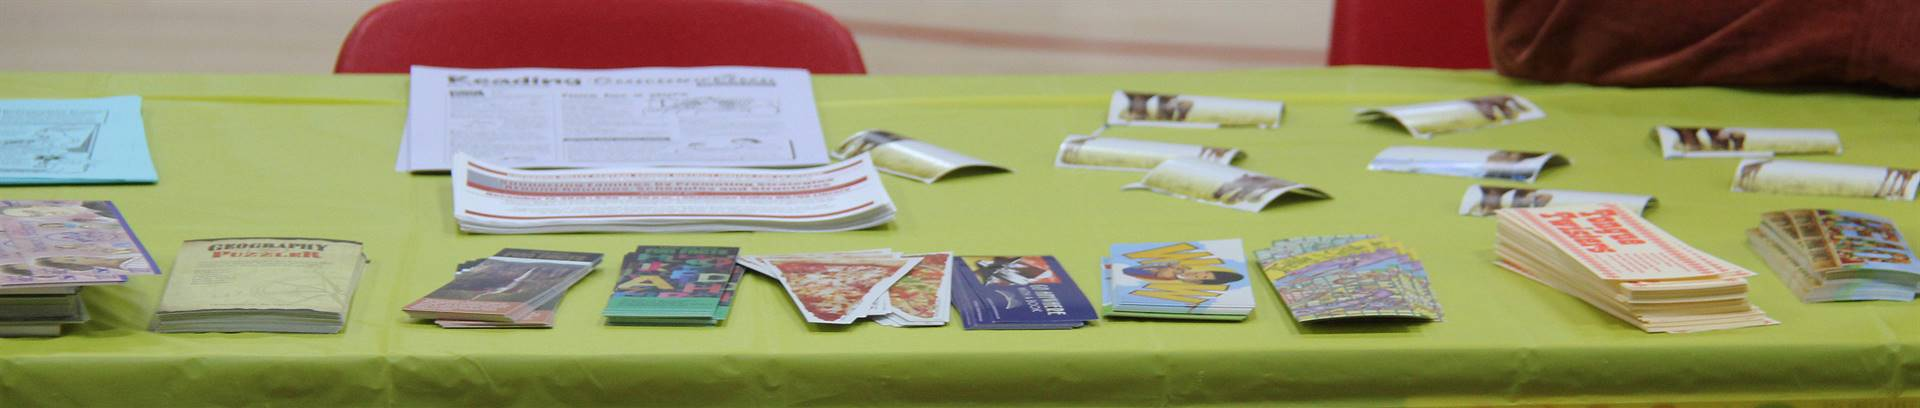 bookmarks on table